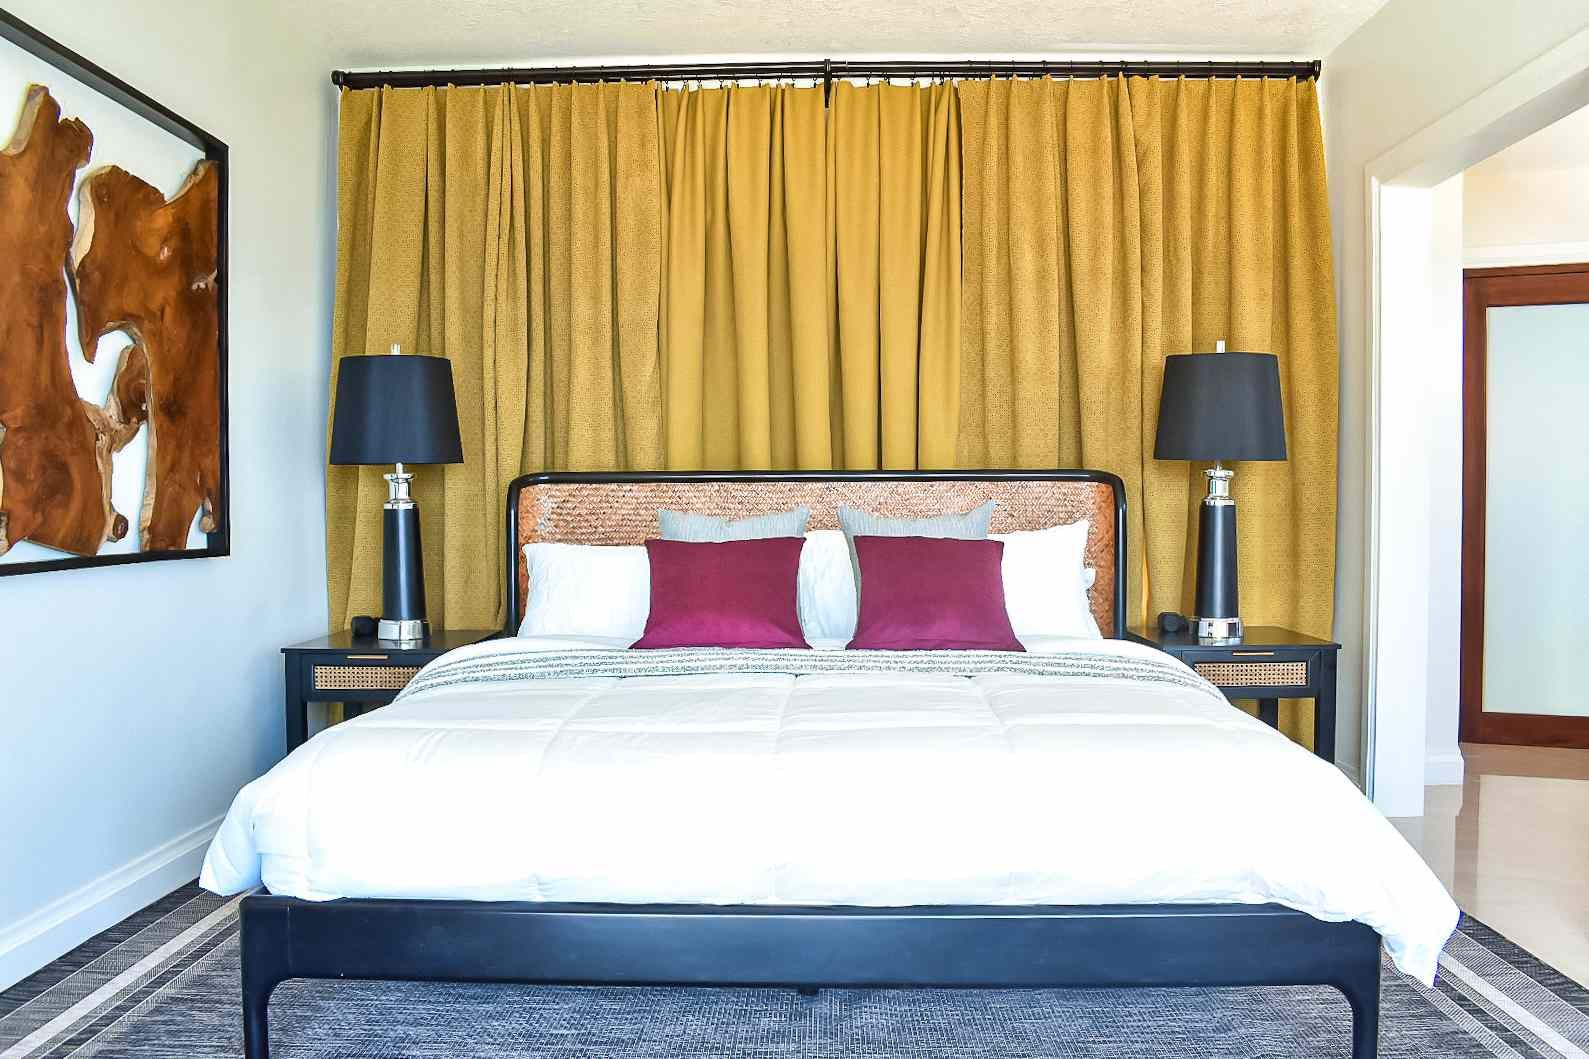 Black bed with chartreuse curtain behind it.